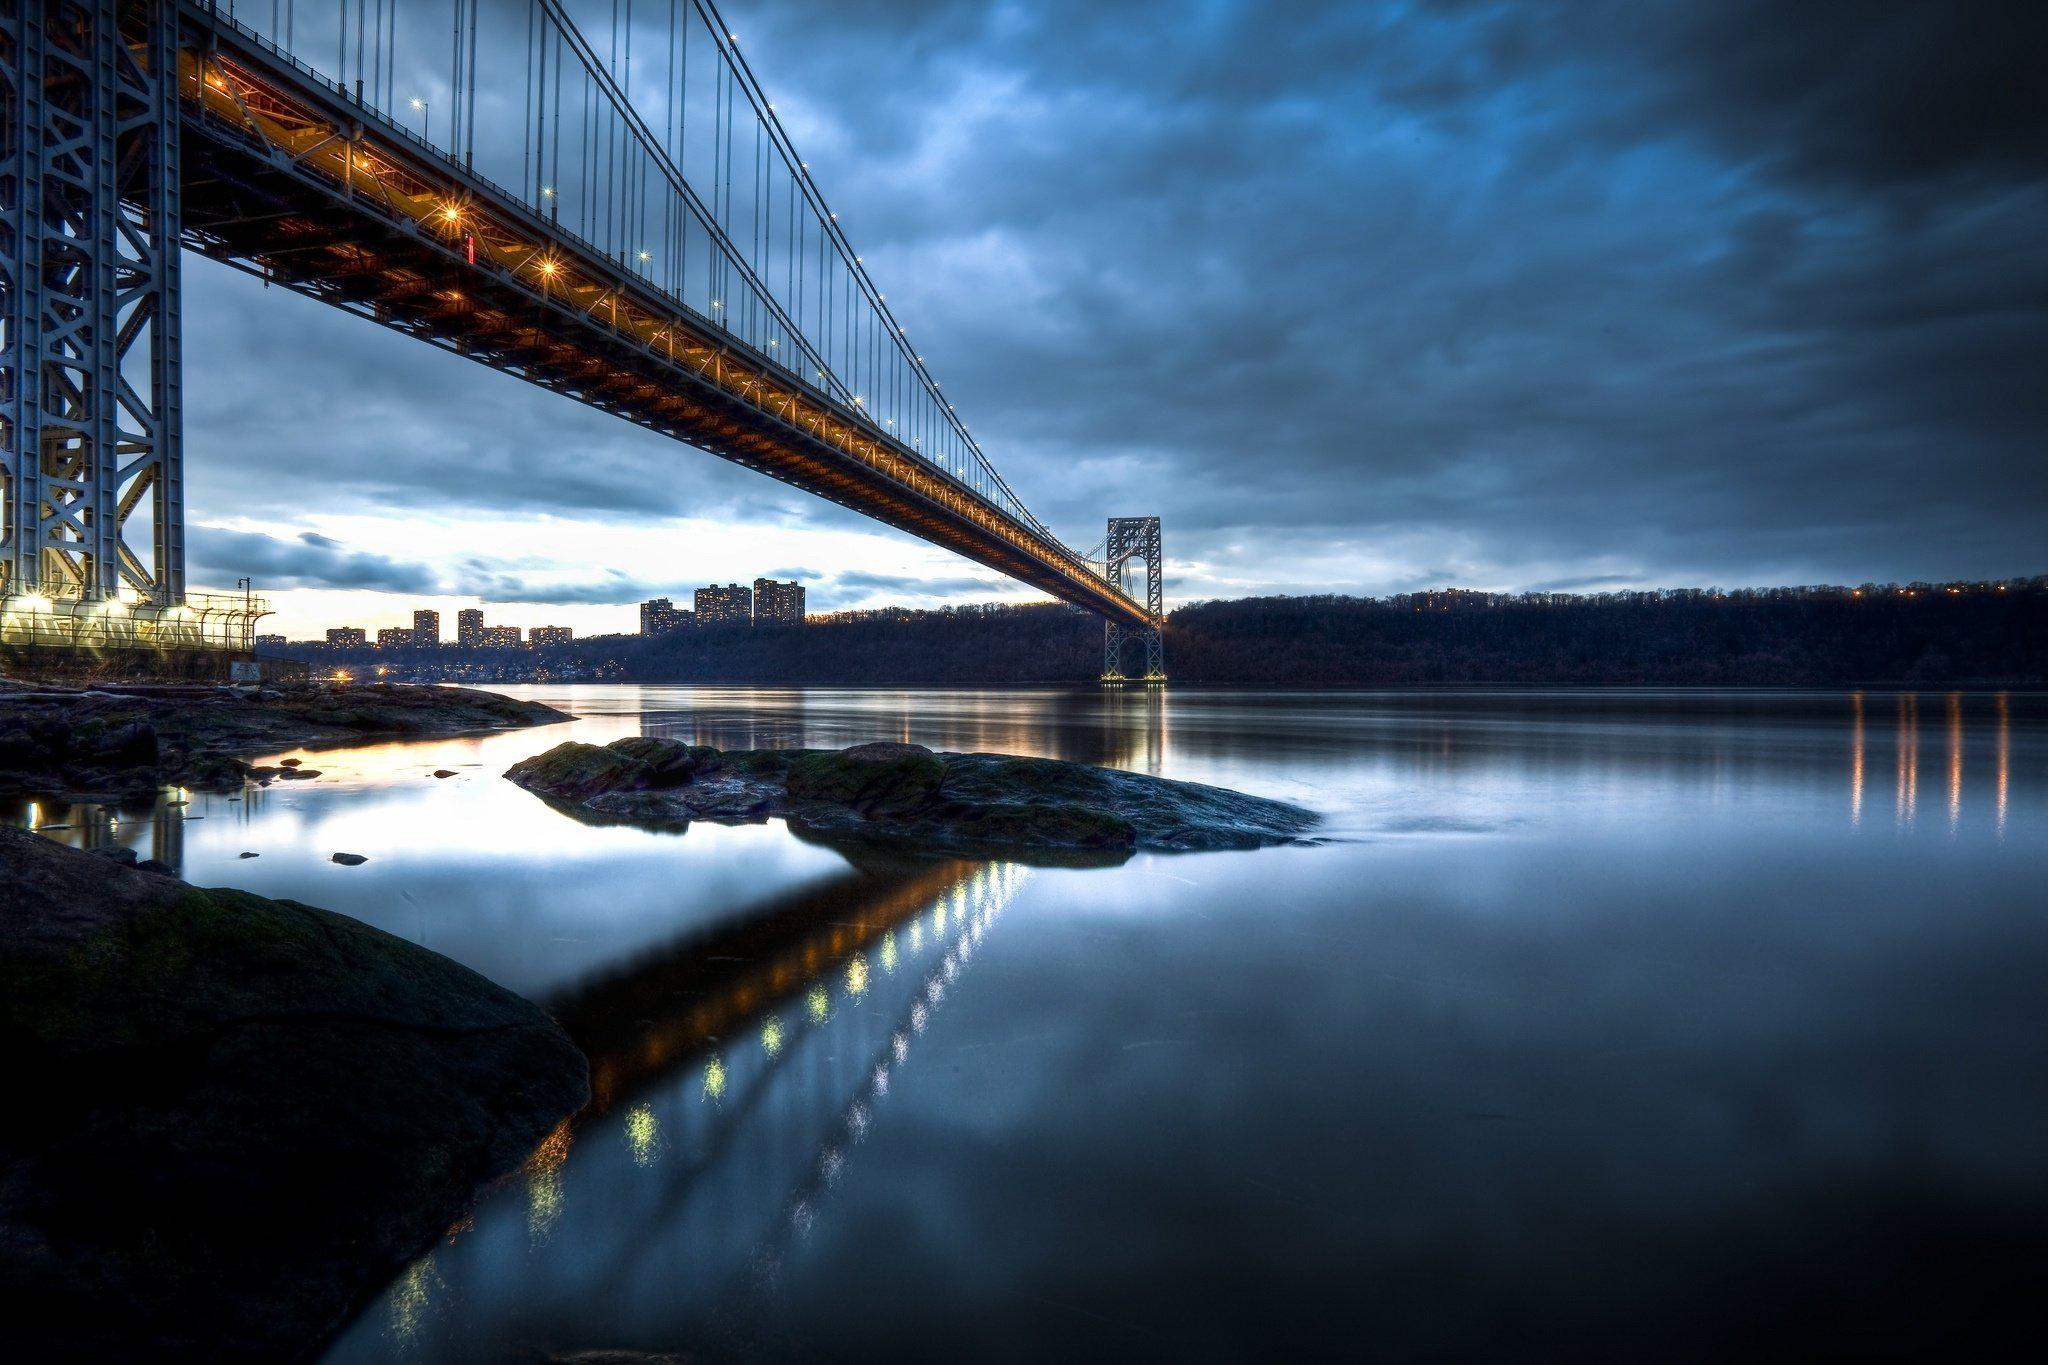 Good Night 3d Moving Wallpaper Hd George Washington Bridge Manhattan New Jersey Hudson